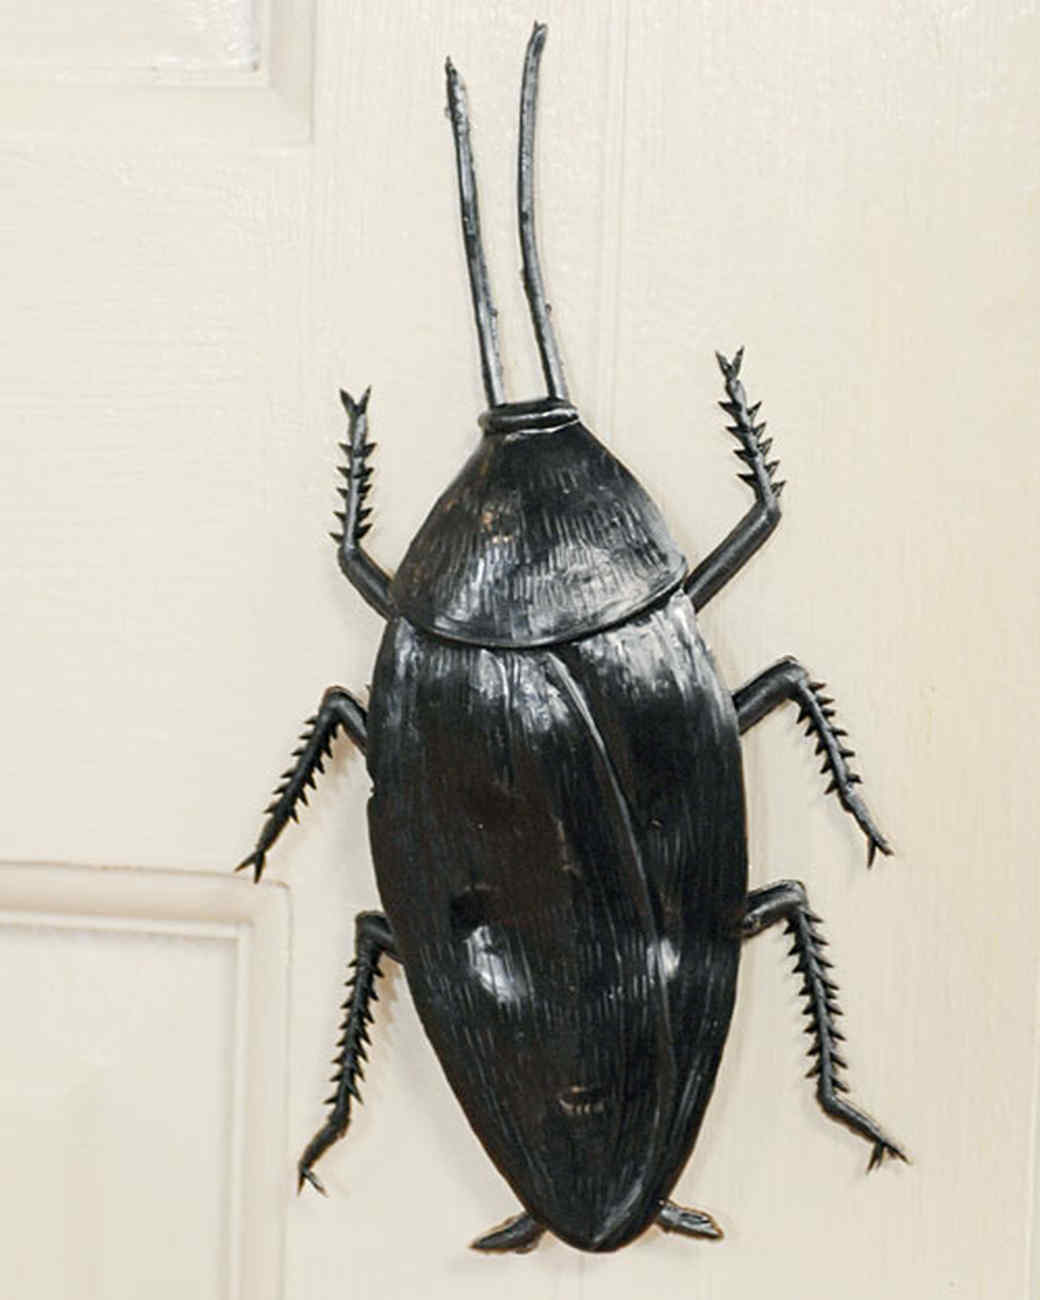 6024_101210_crawling_insect.jpg